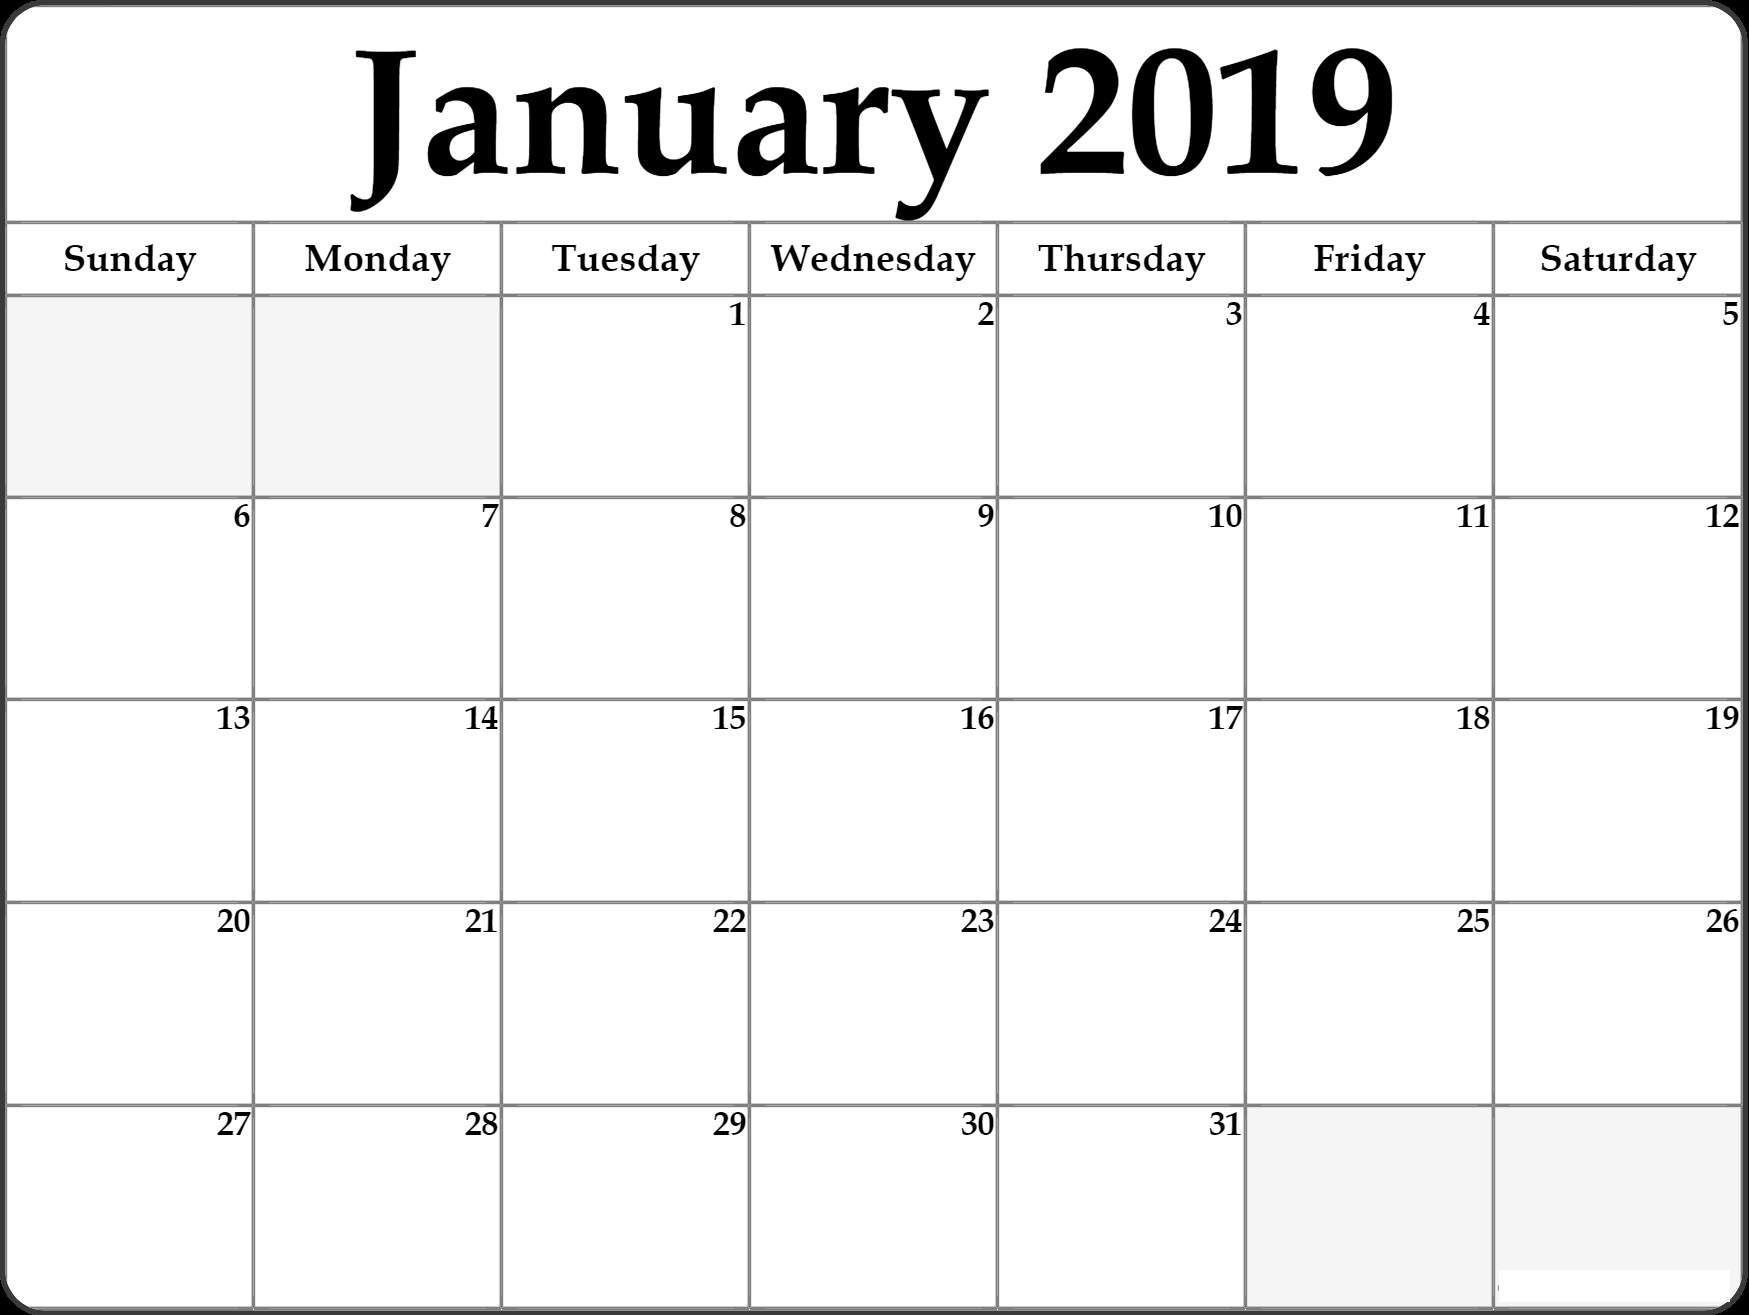 free january 2019 calendar template download::Blank Calendar 2019 Template